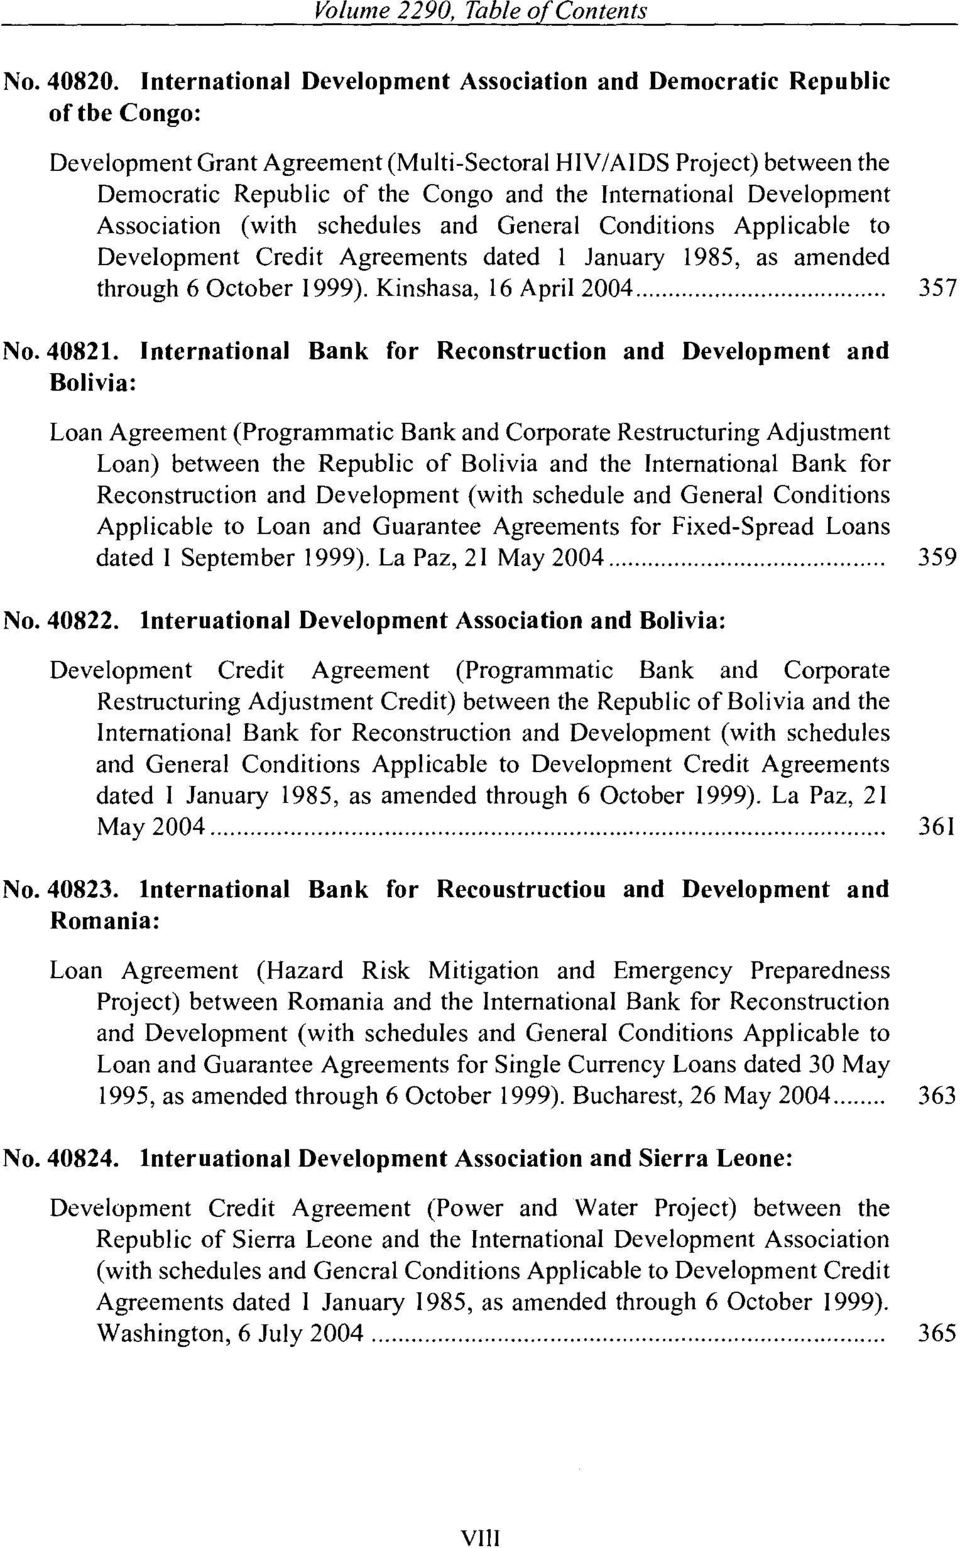 International Development Association (with schedules and General Conditions Applicable to Development Credit Agreements dated 1 January 1985, as amended through 6 October 1999).